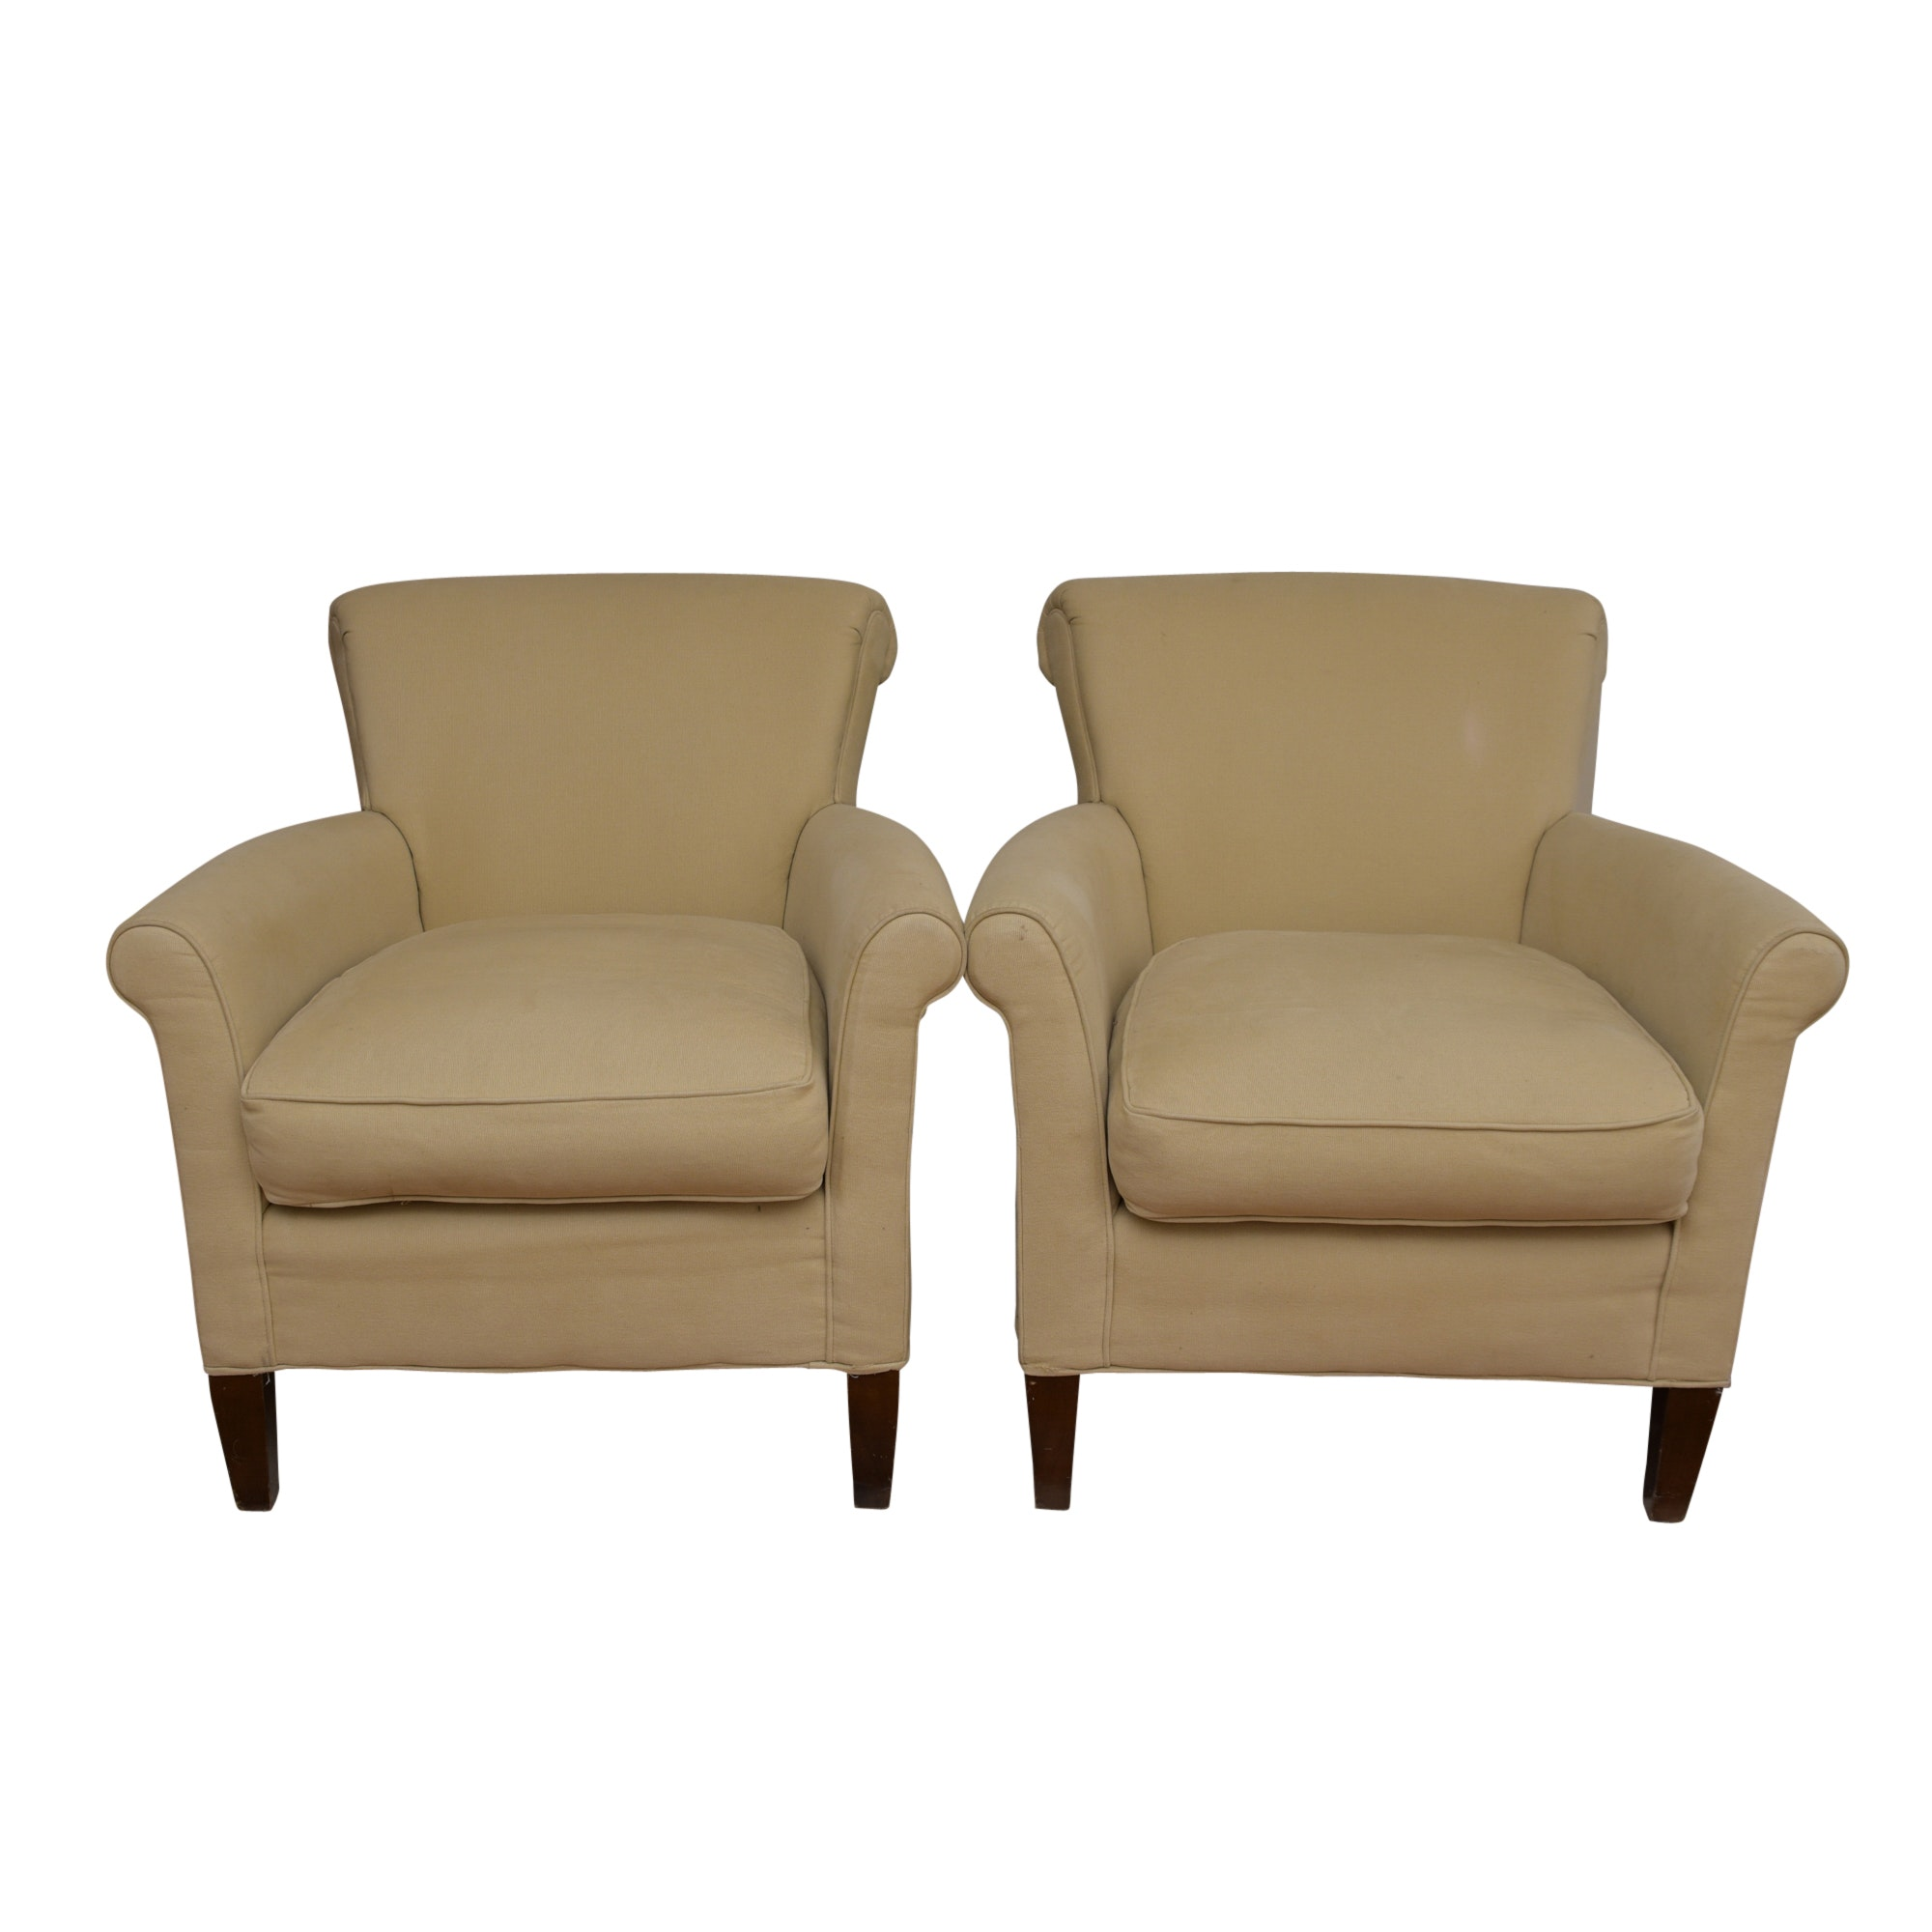 Beige-Upholstered Armchairs by the Pembrook Chair Corp.